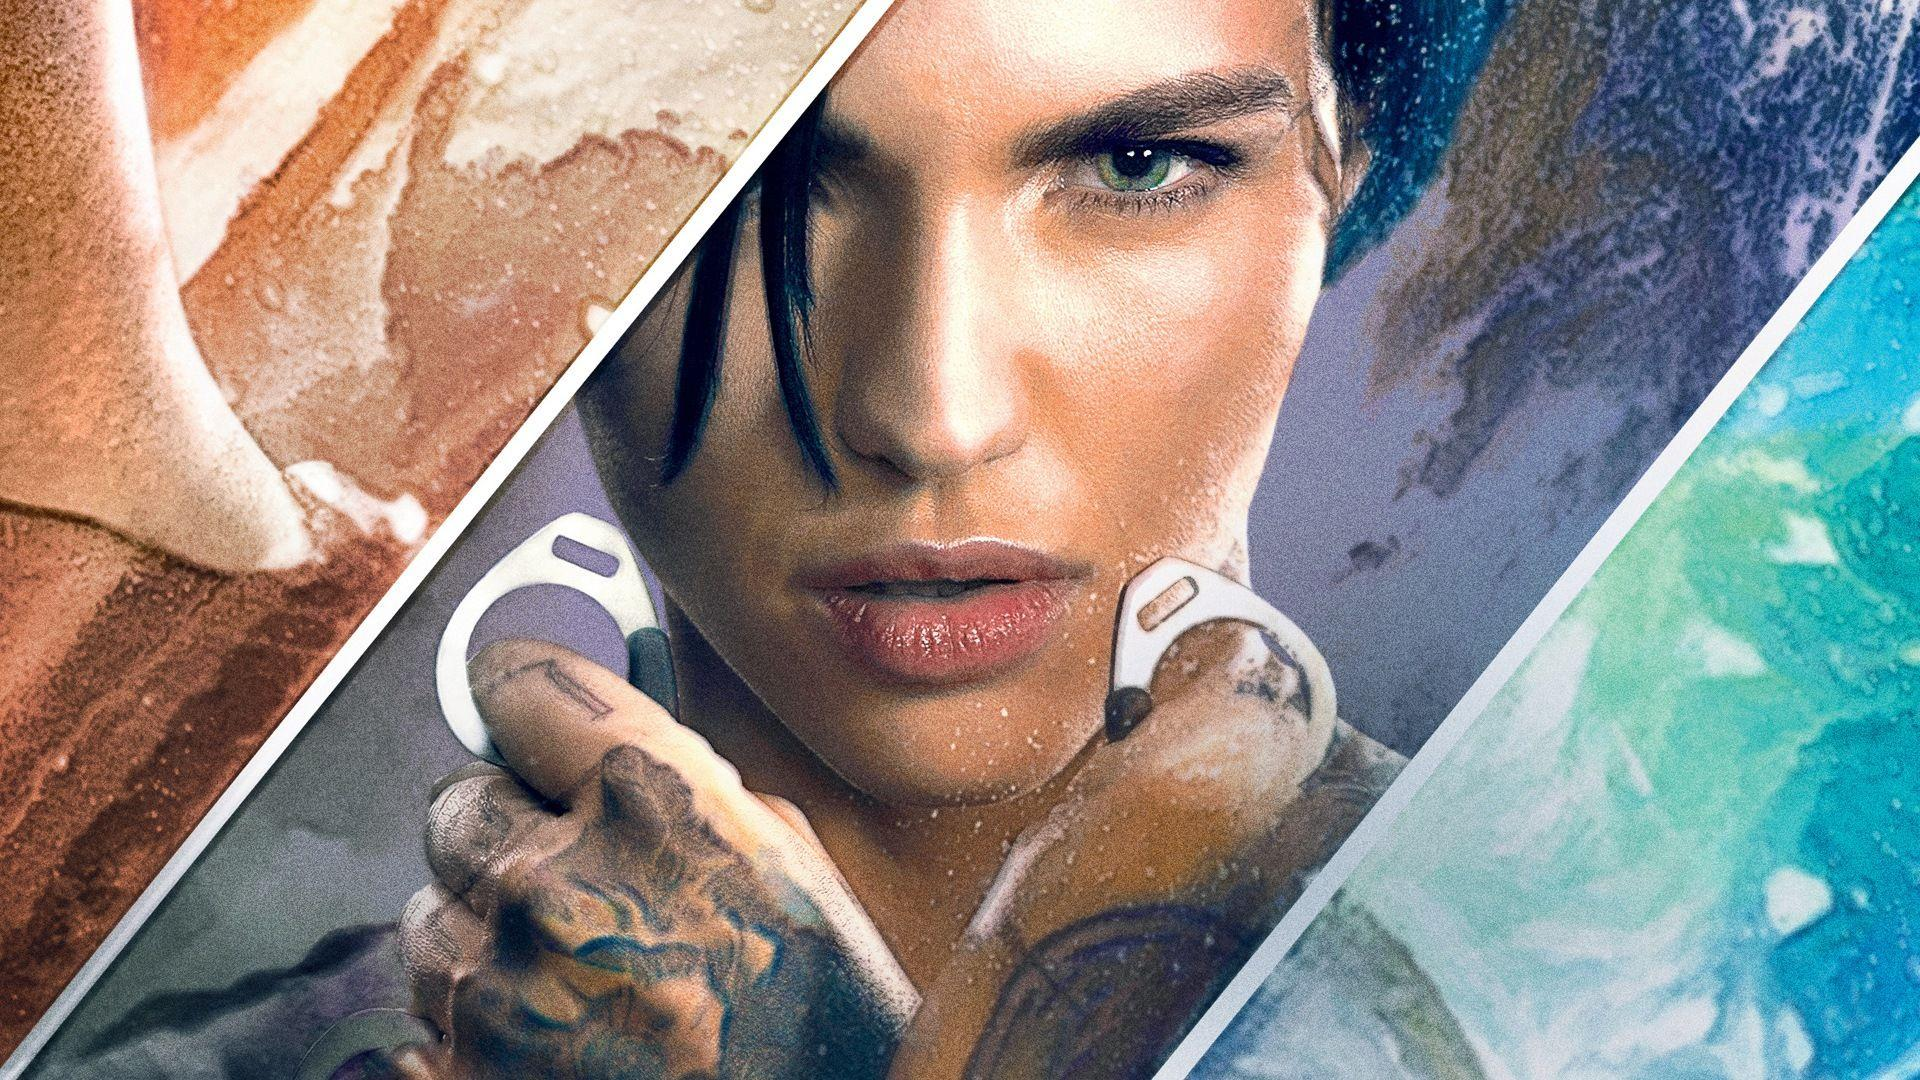 Ruby Rose XXX Return Of Xander Cage Wallpaper 19283